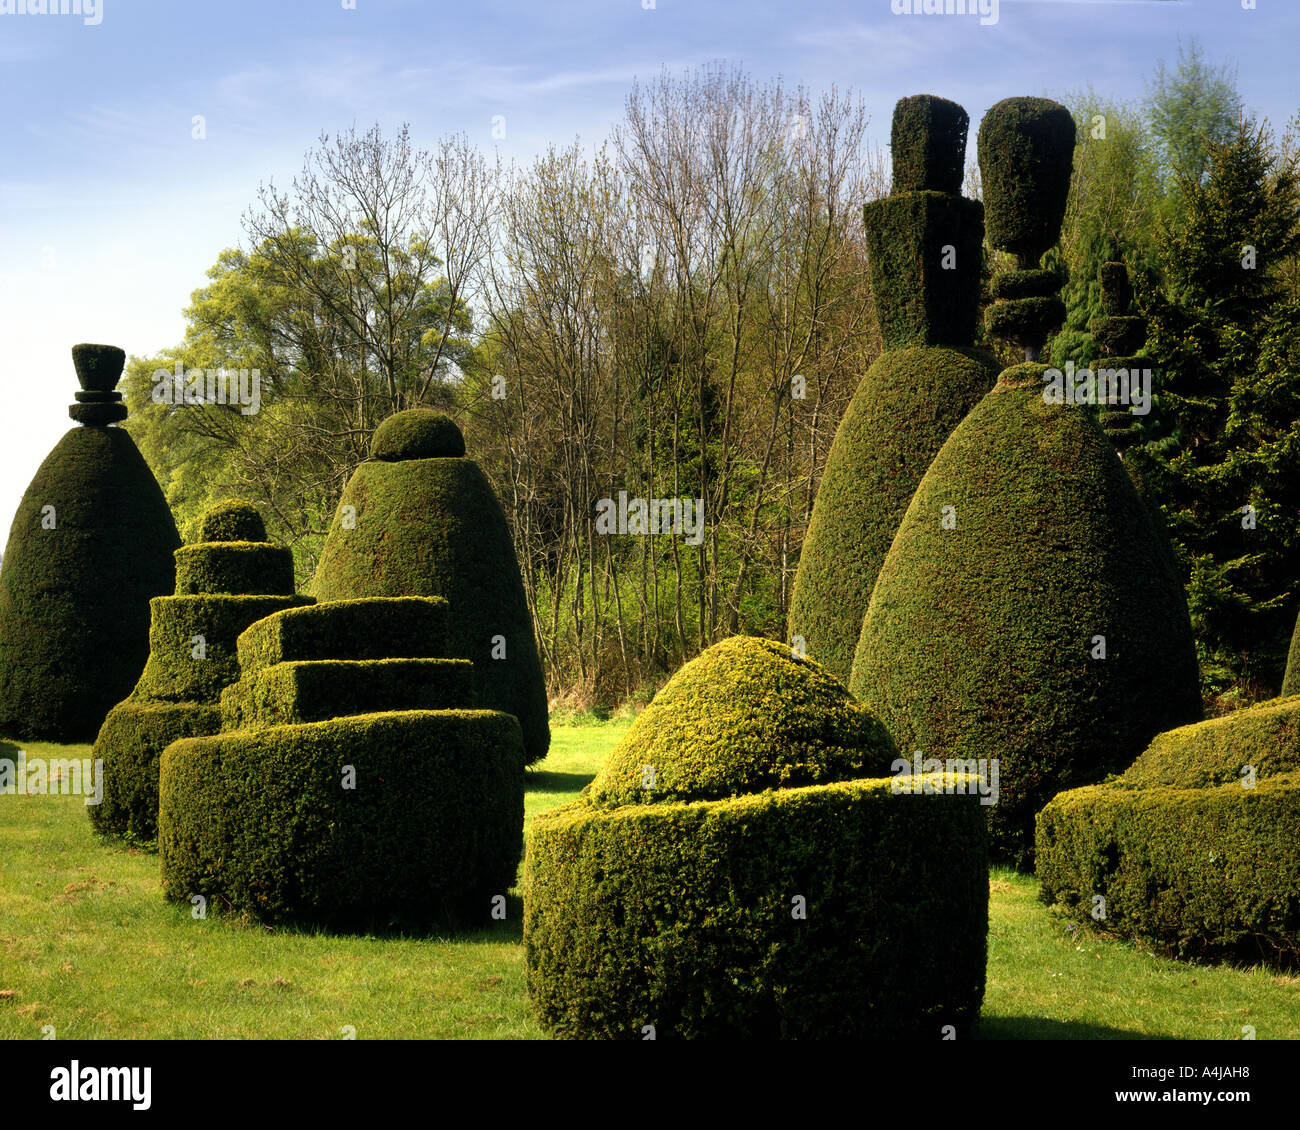 GB - RUTLAND:  Clipsham Yew Tree Avenue - Stock Image